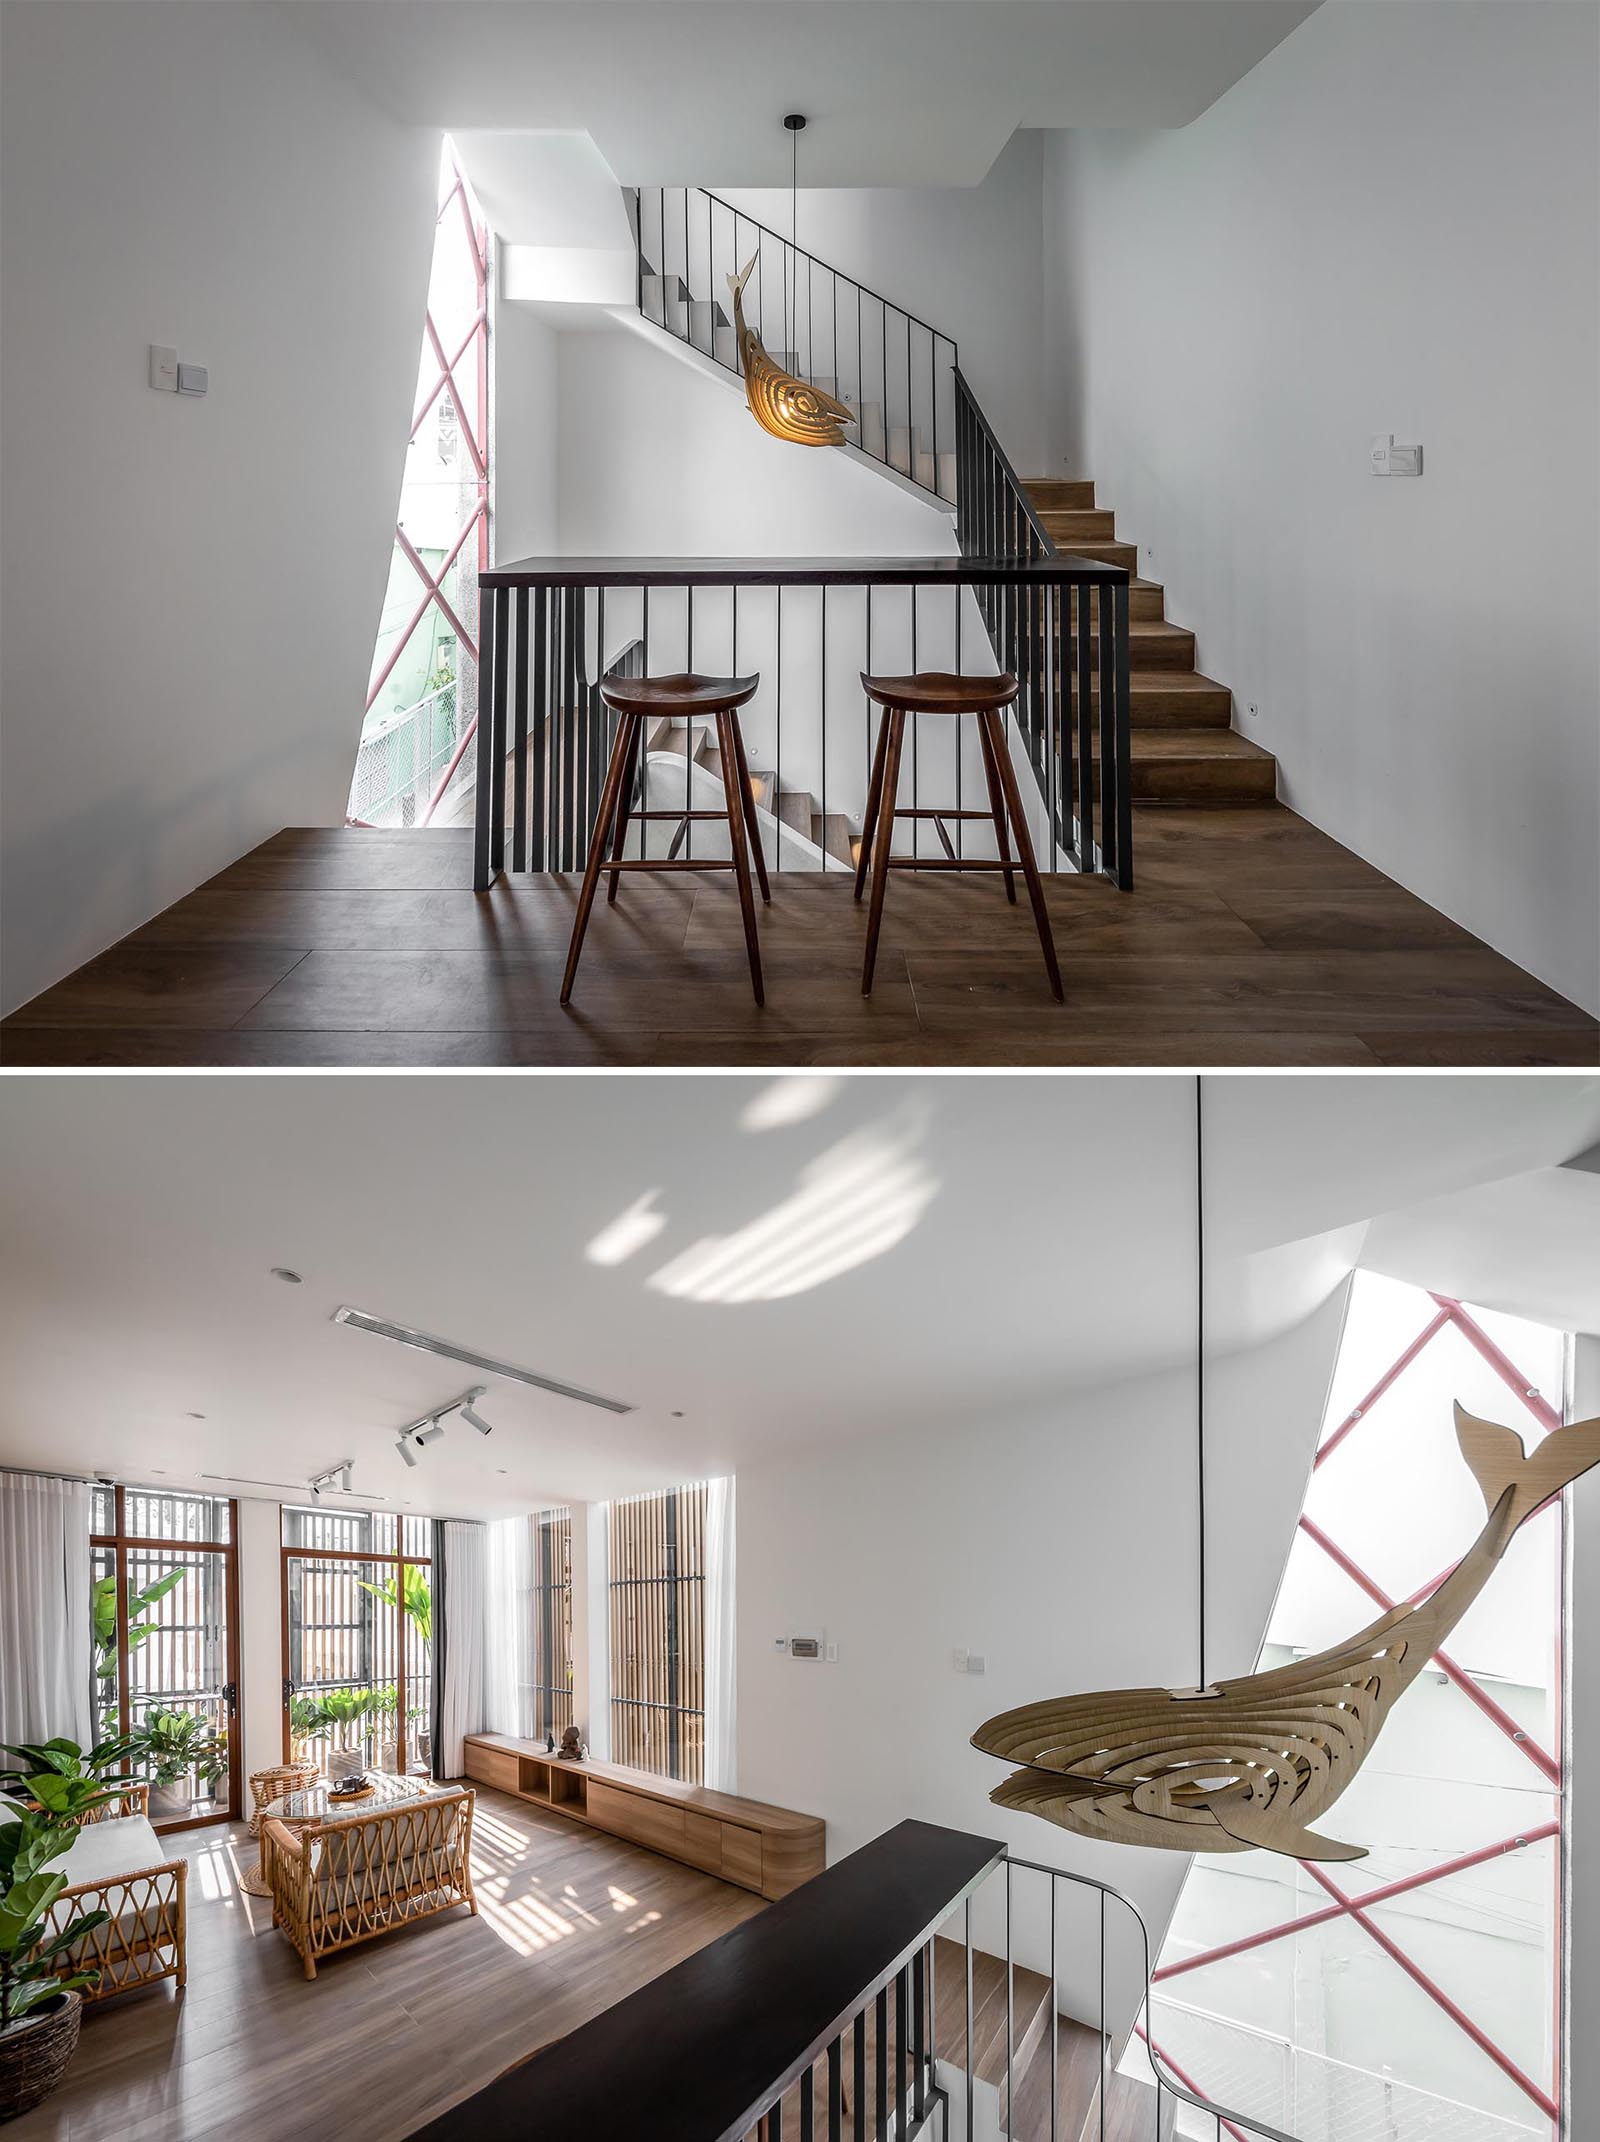 Before reaching the living room of this modern home, there's a small bar area built into the design of the black handrail. From this angle, you're able to see the wood wall sculpture light that hangs from the ceiling.